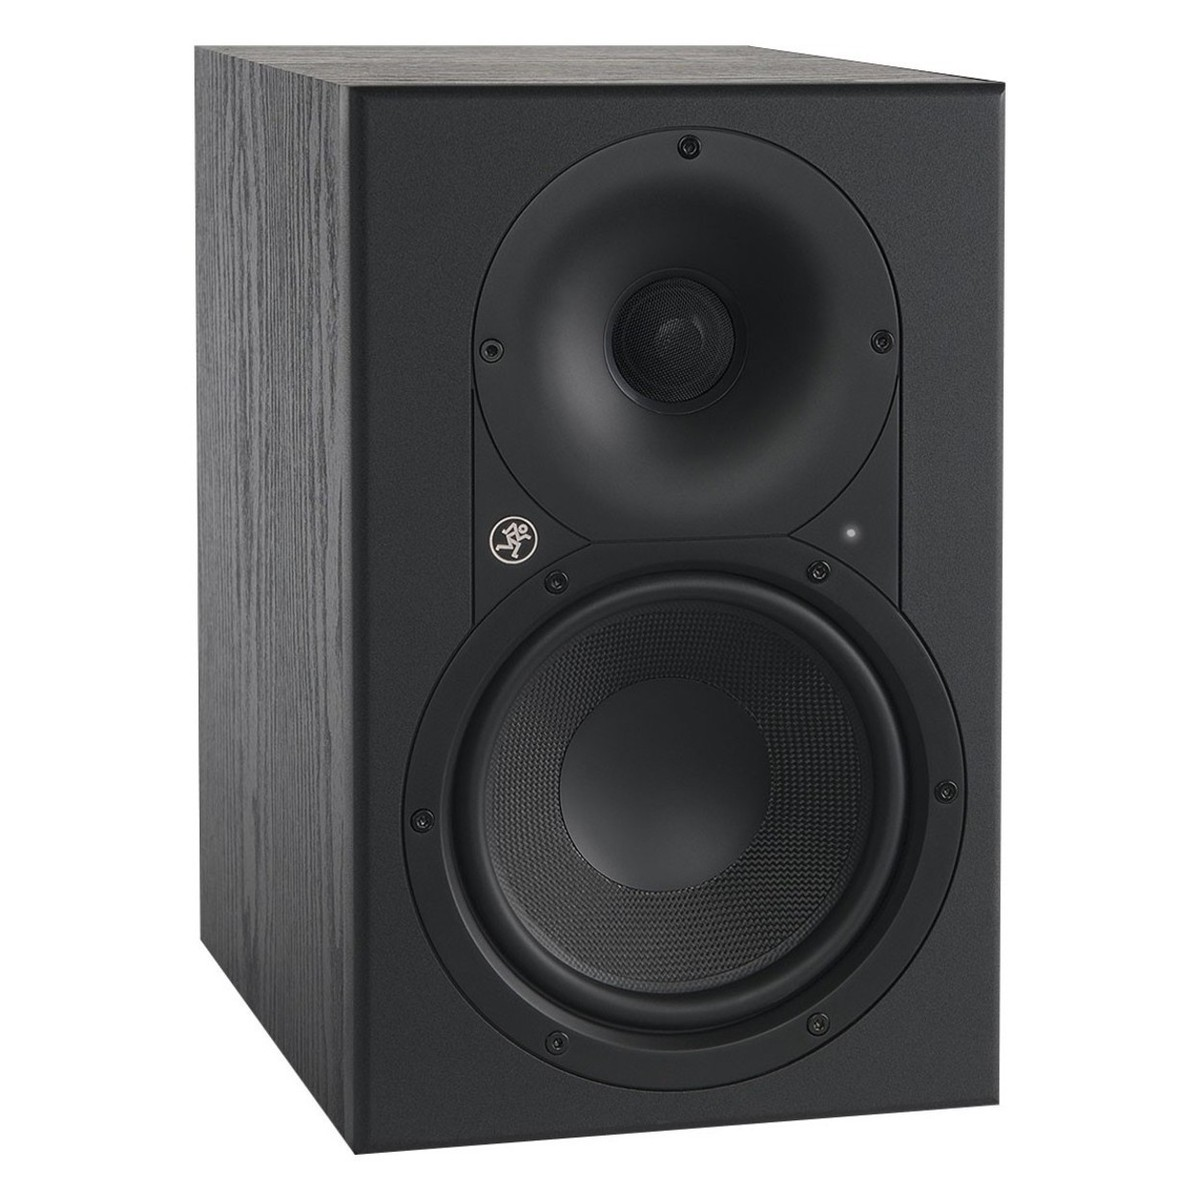 mackie xr624 active studio monitor pair at gear4music. Black Bedroom Furniture Sets. Home Design Ideas